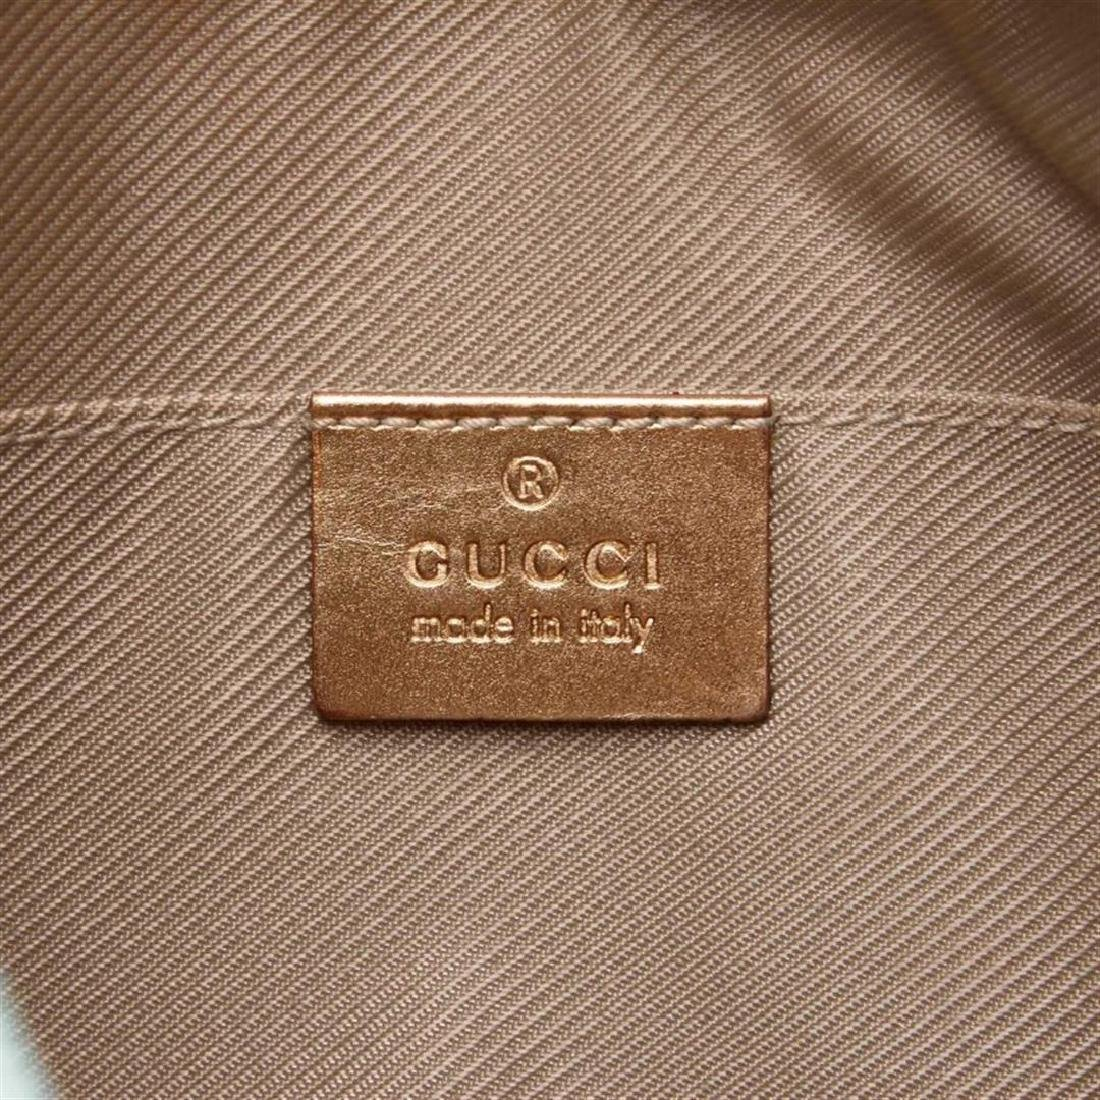 Gucci Blue Green Canvas Brown Leather Jacquard Shoulder - 7